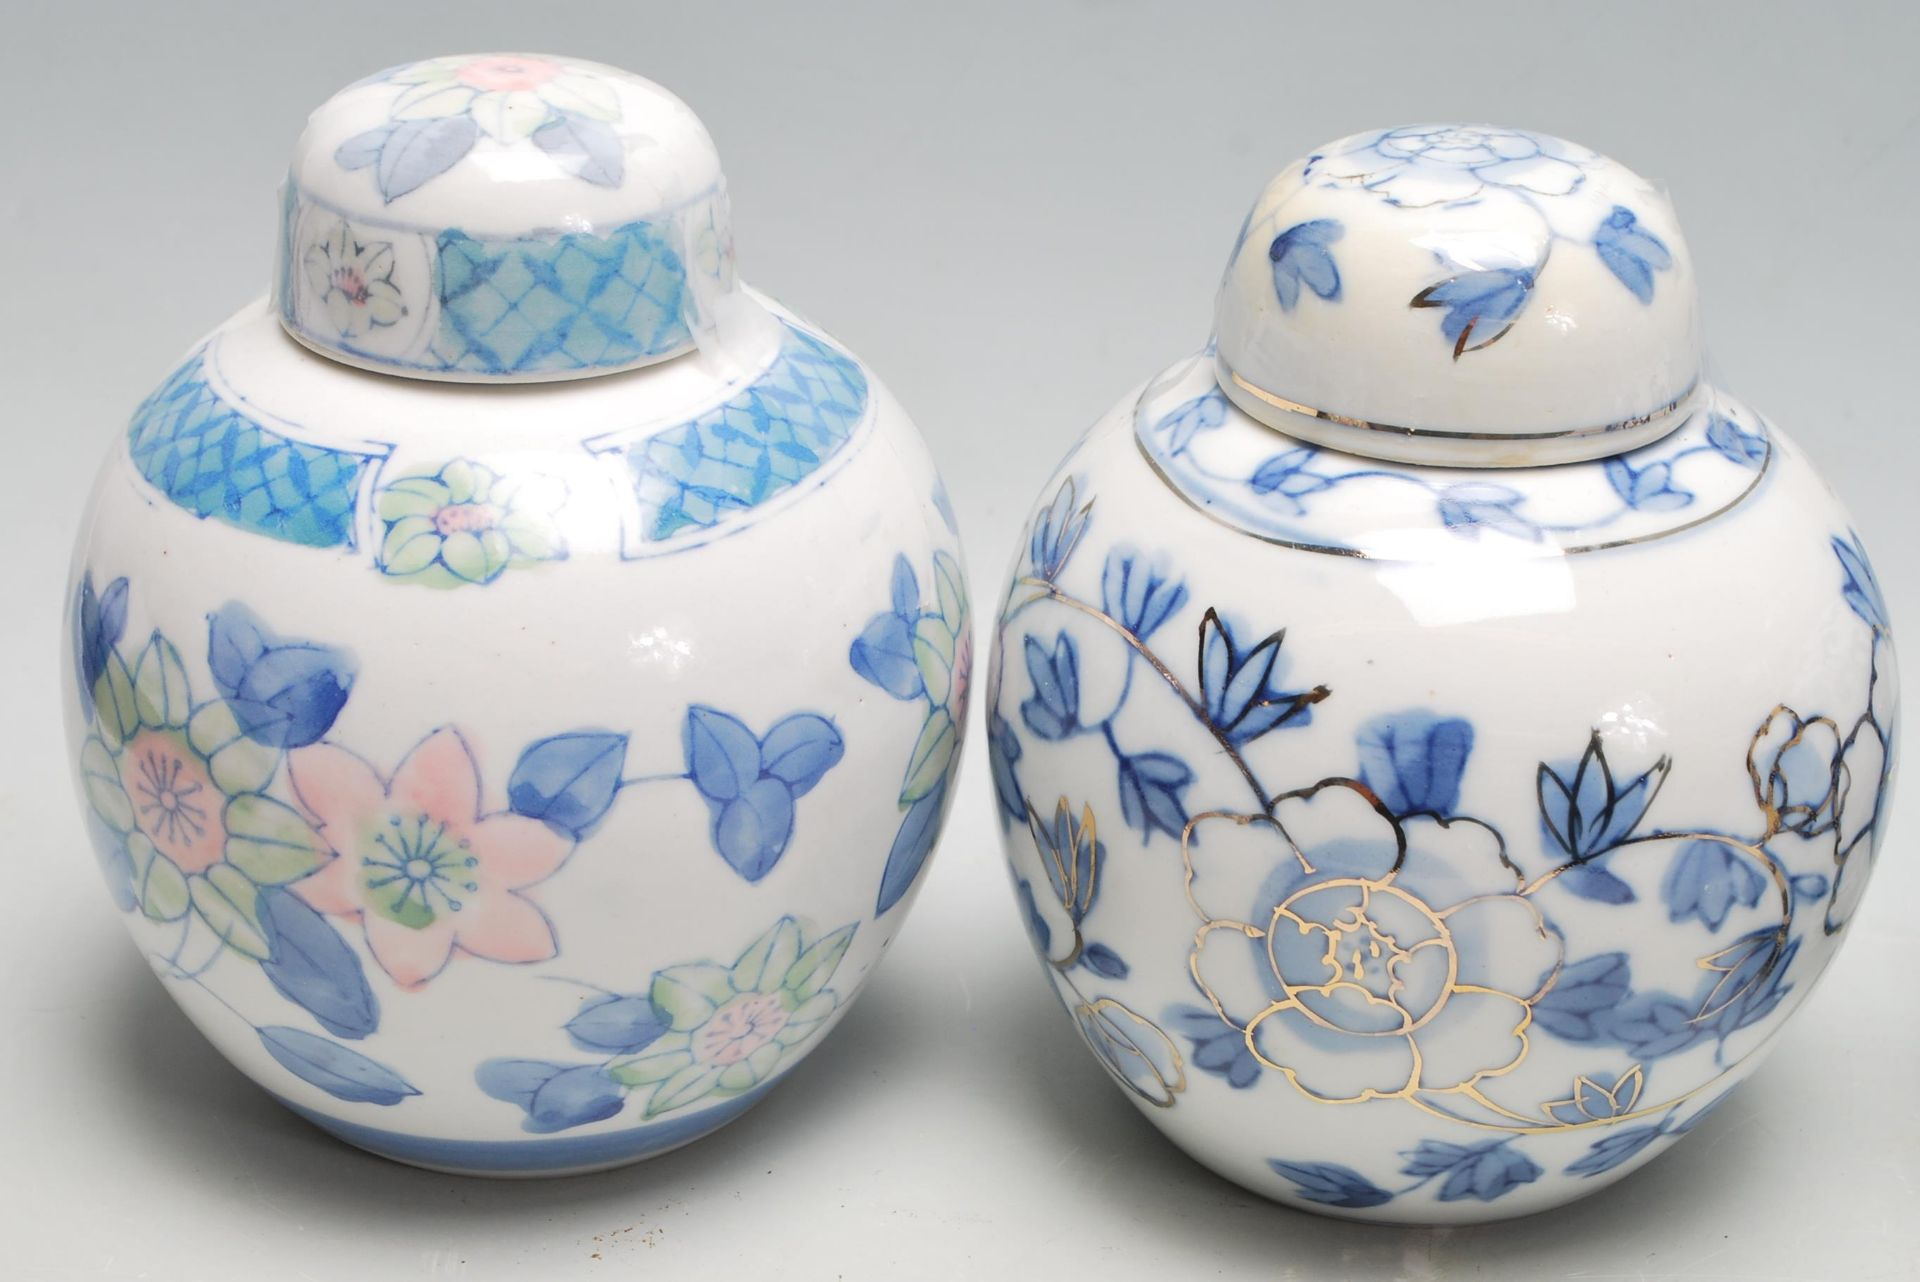 Los 82 - A collection of 20th Century Chinese ginger jars of various styles and forms to include some printed